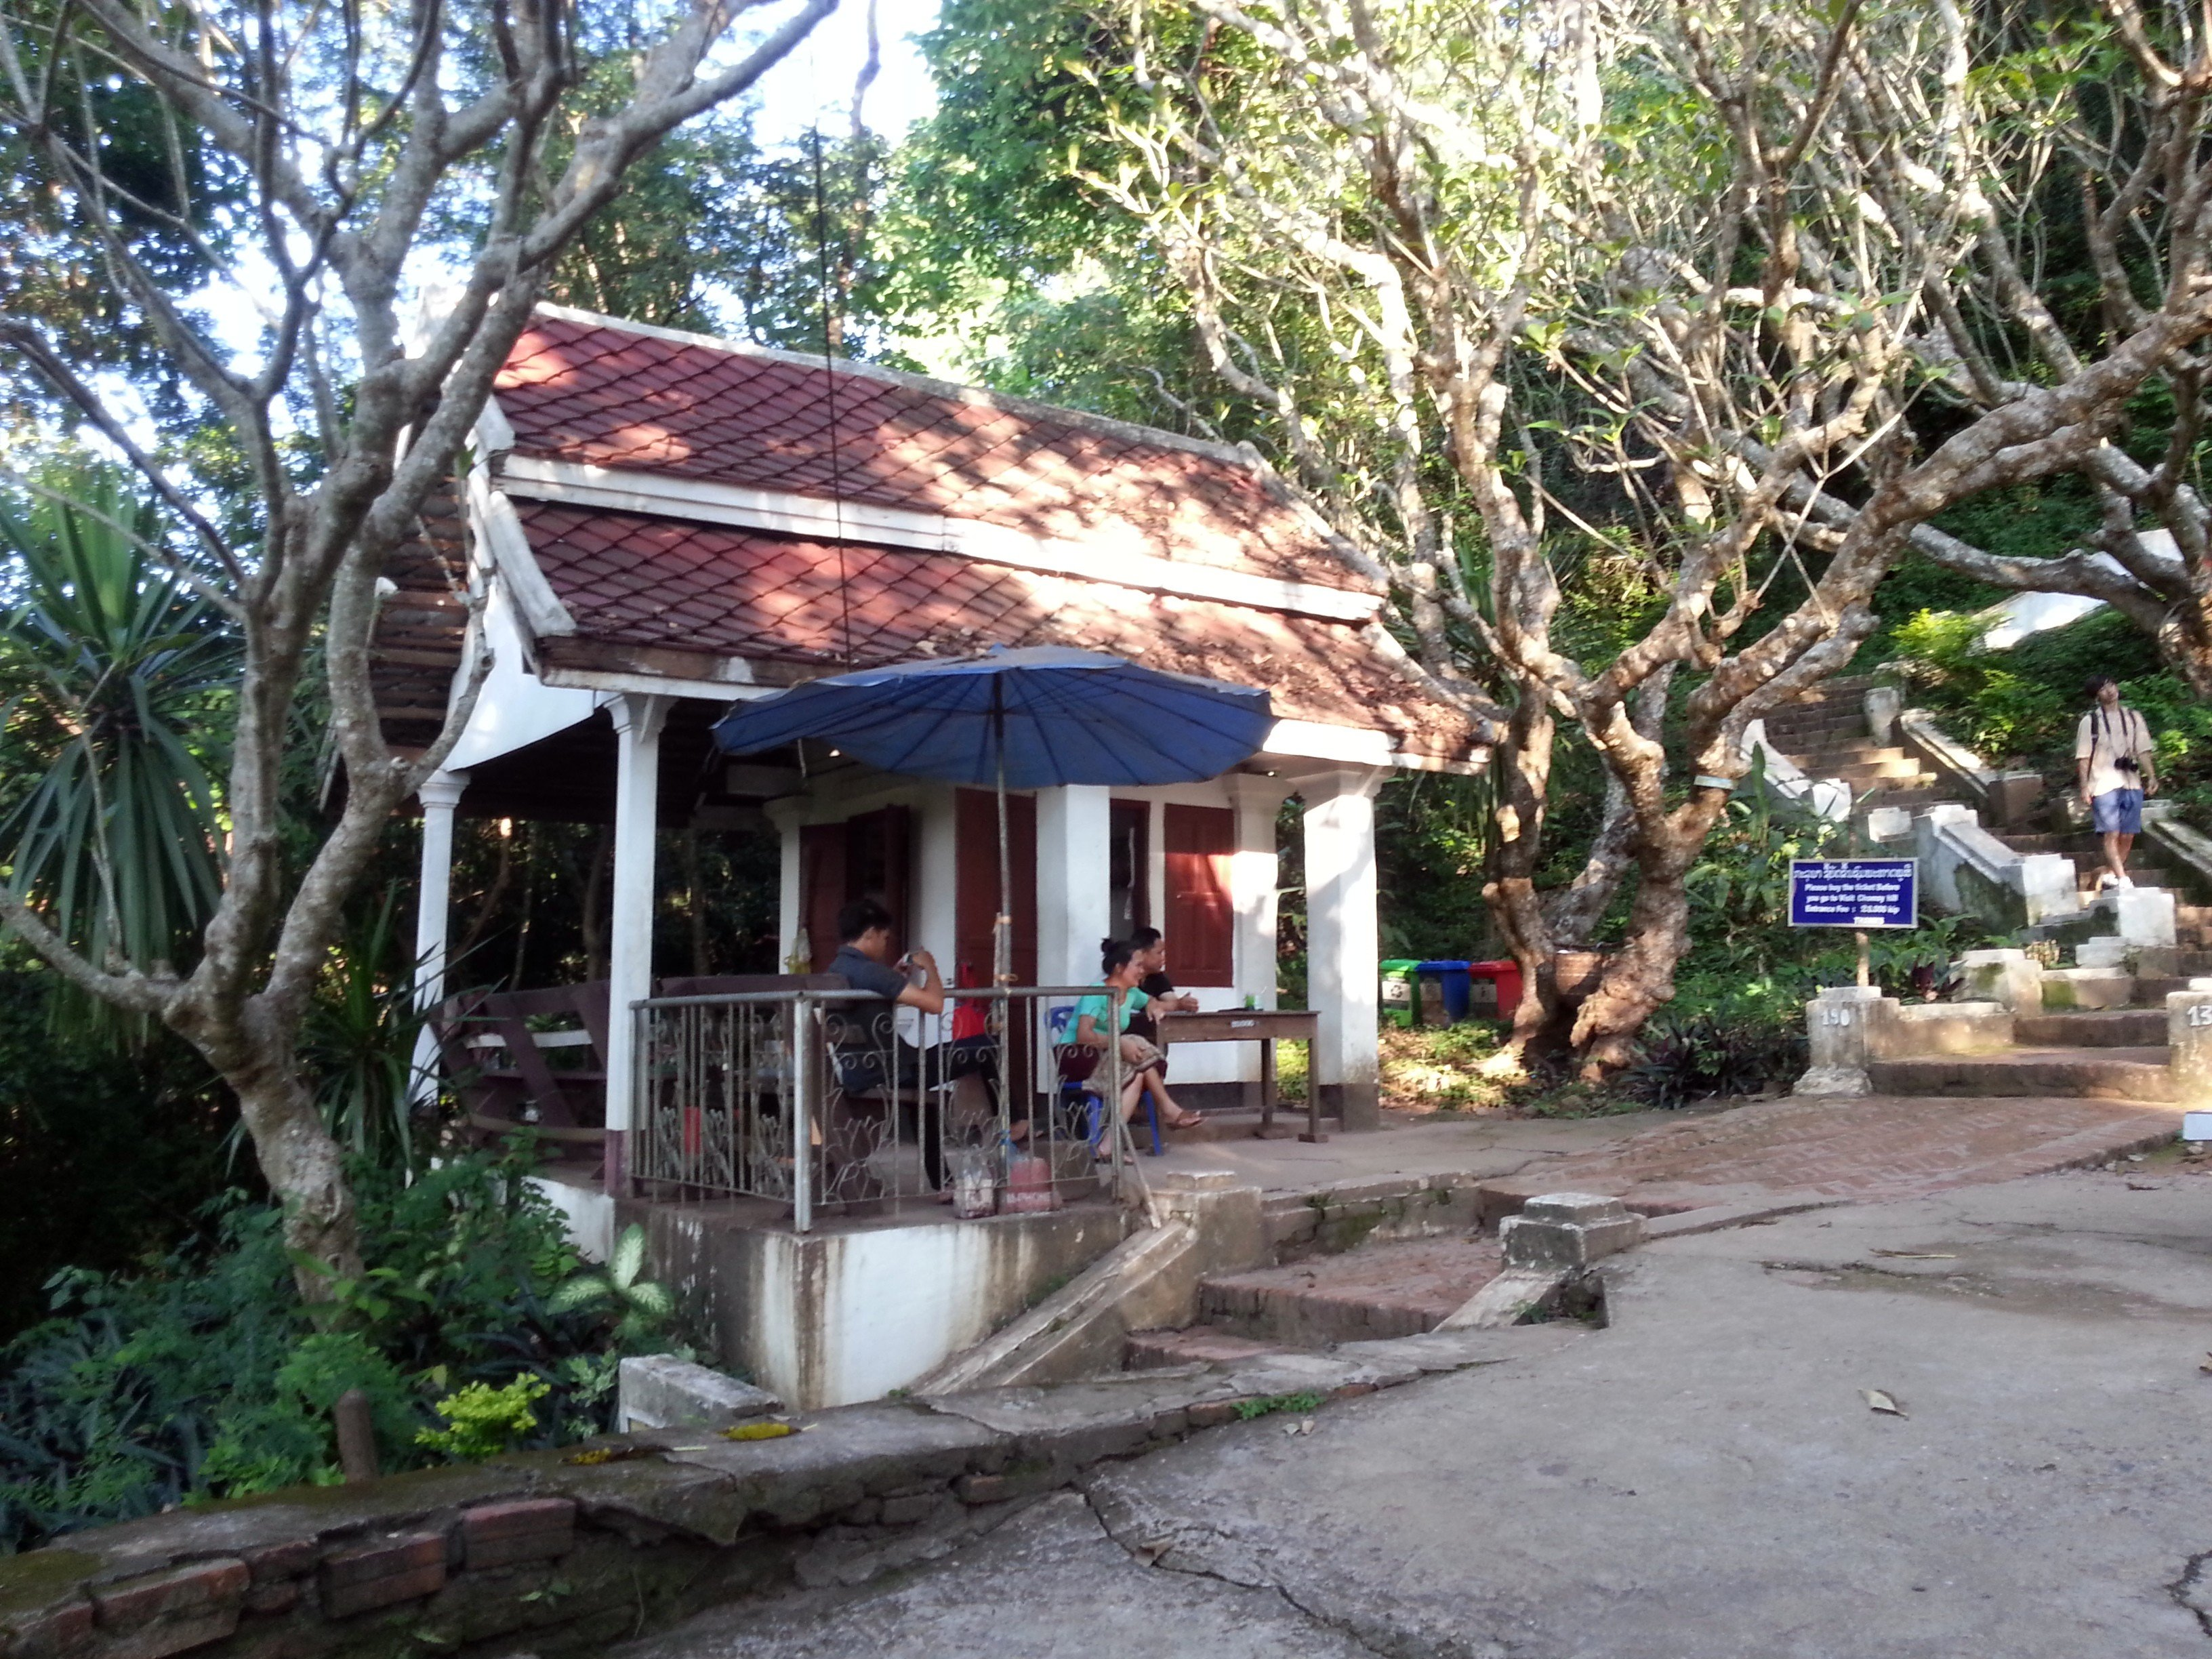 Ticket booth for Phou Si Hill